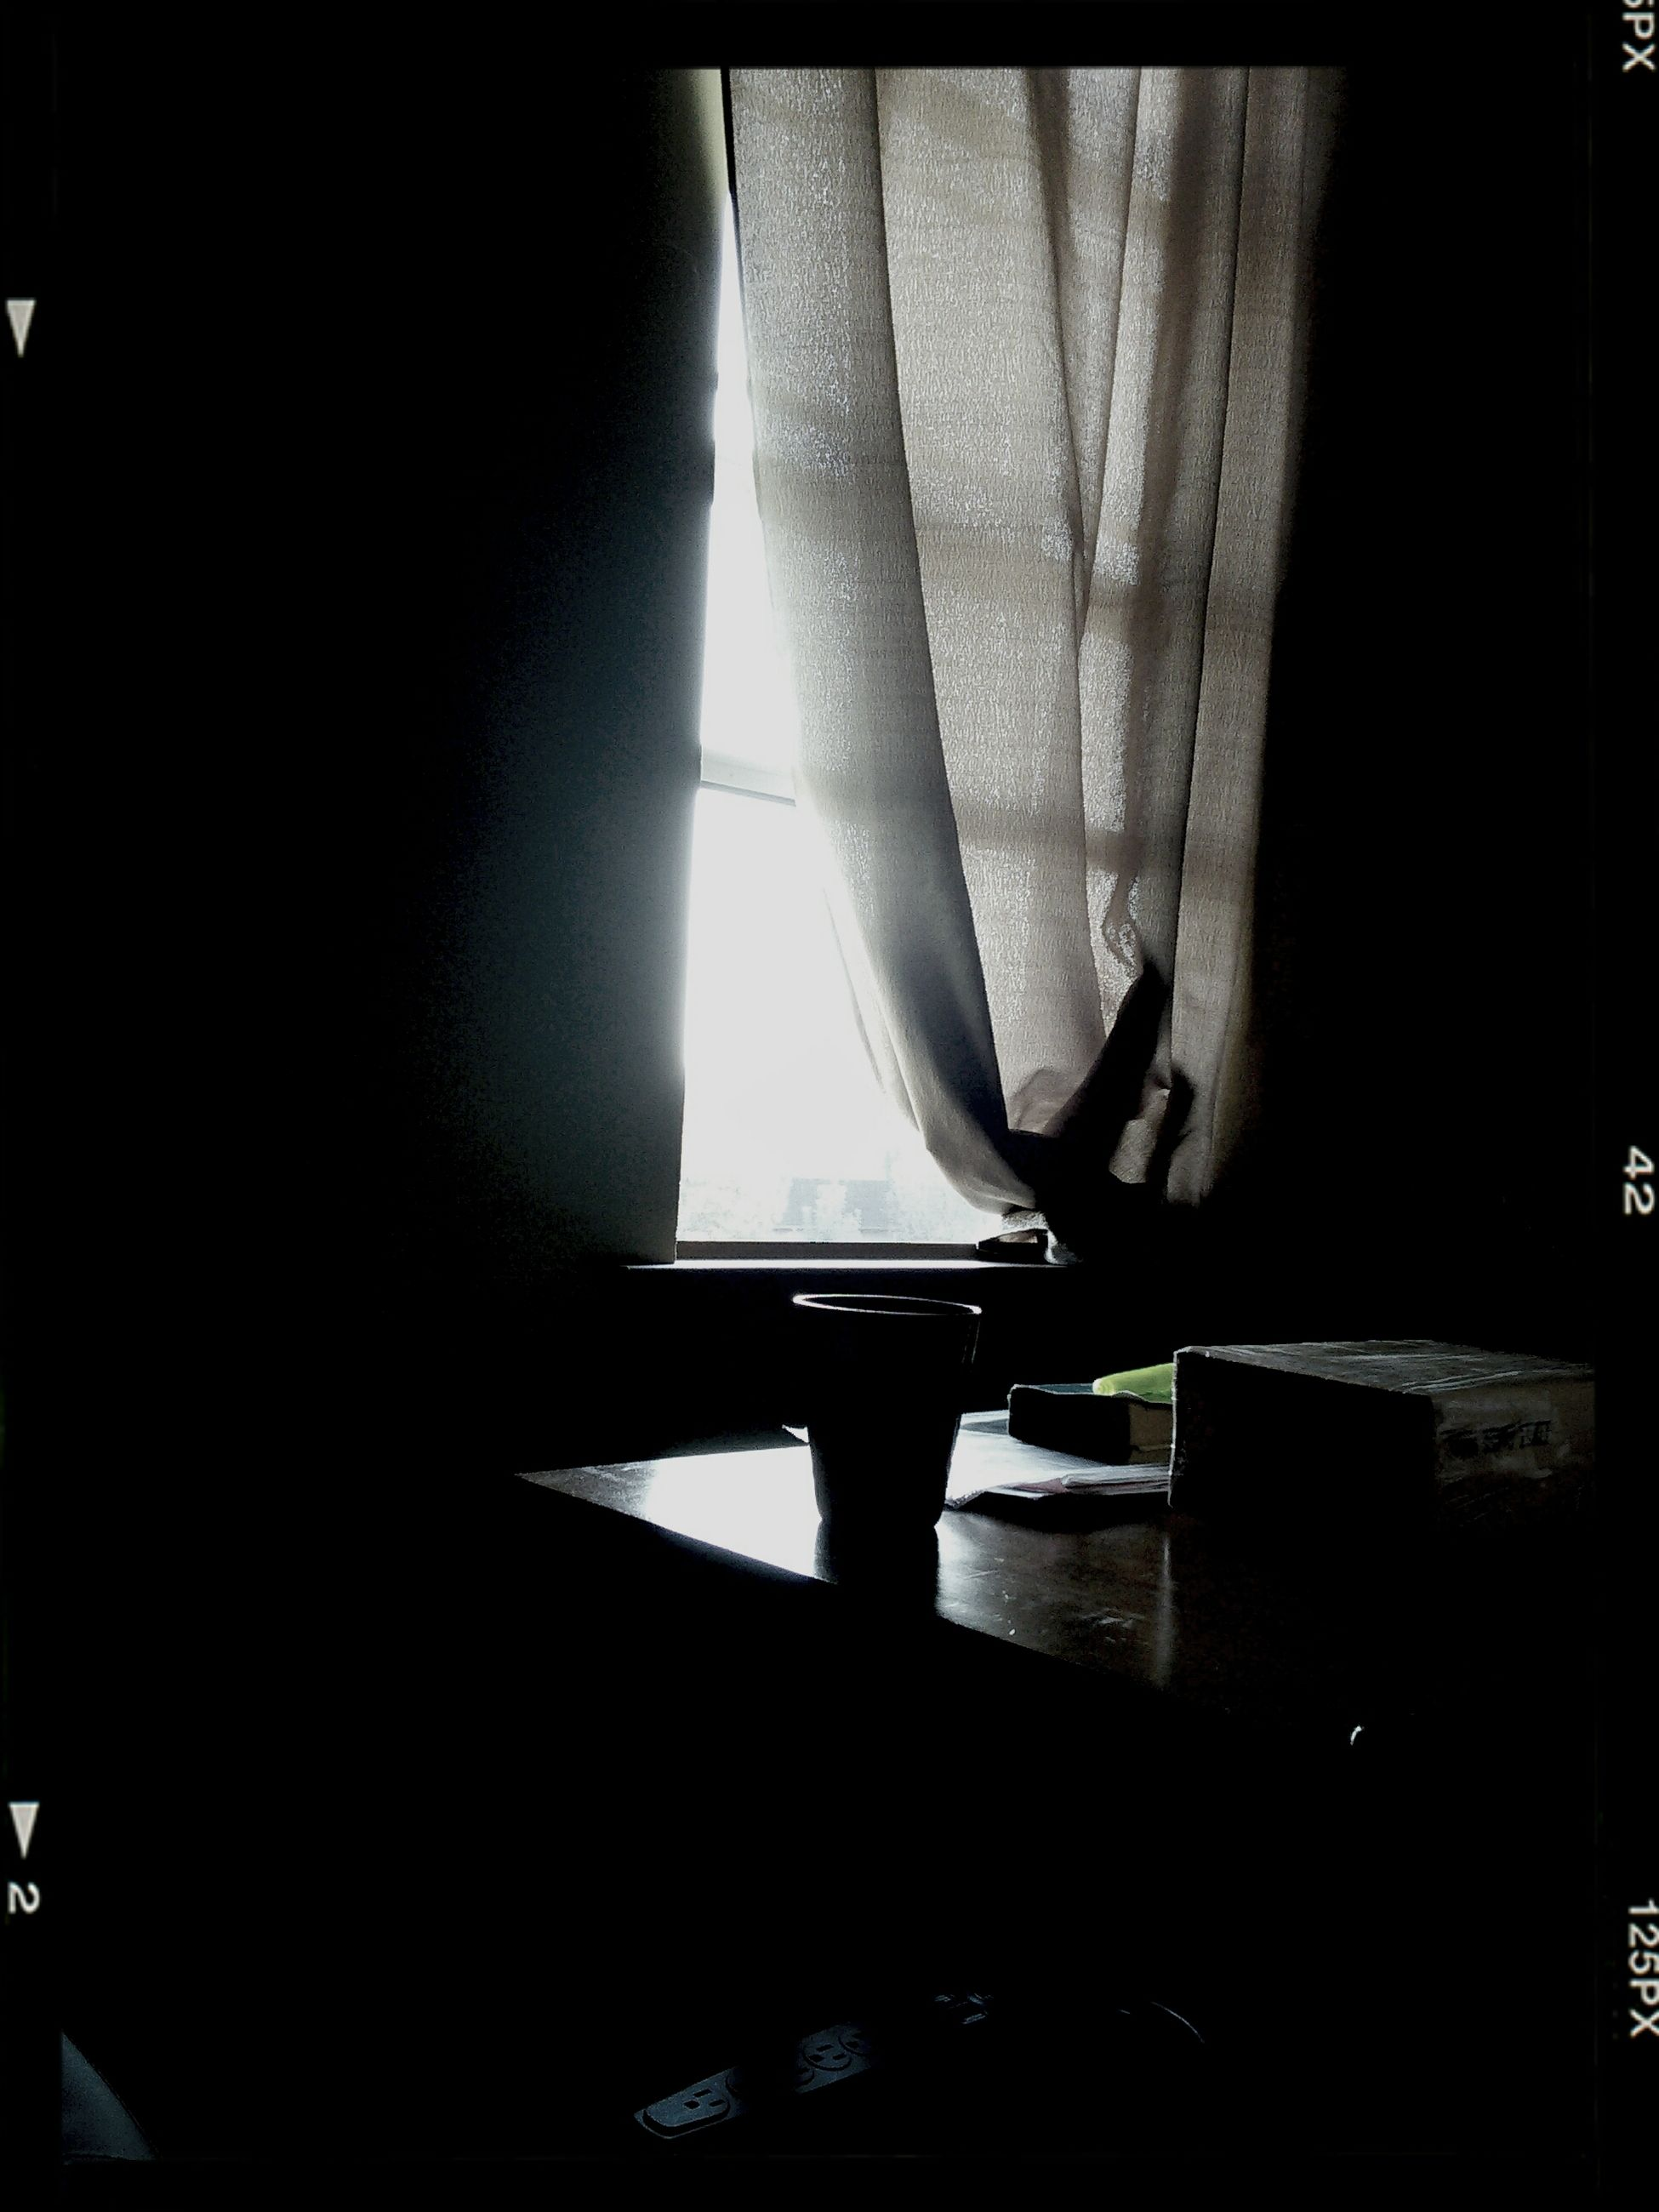 indoors, dark, illuminated, silhouette, window, night, lighting equipment, home interior, sunlight, shadow, light - natural phenomenon, no people, glass - material, transparent, close-up, reflection, curtain, light, auto post production filter, darkroom